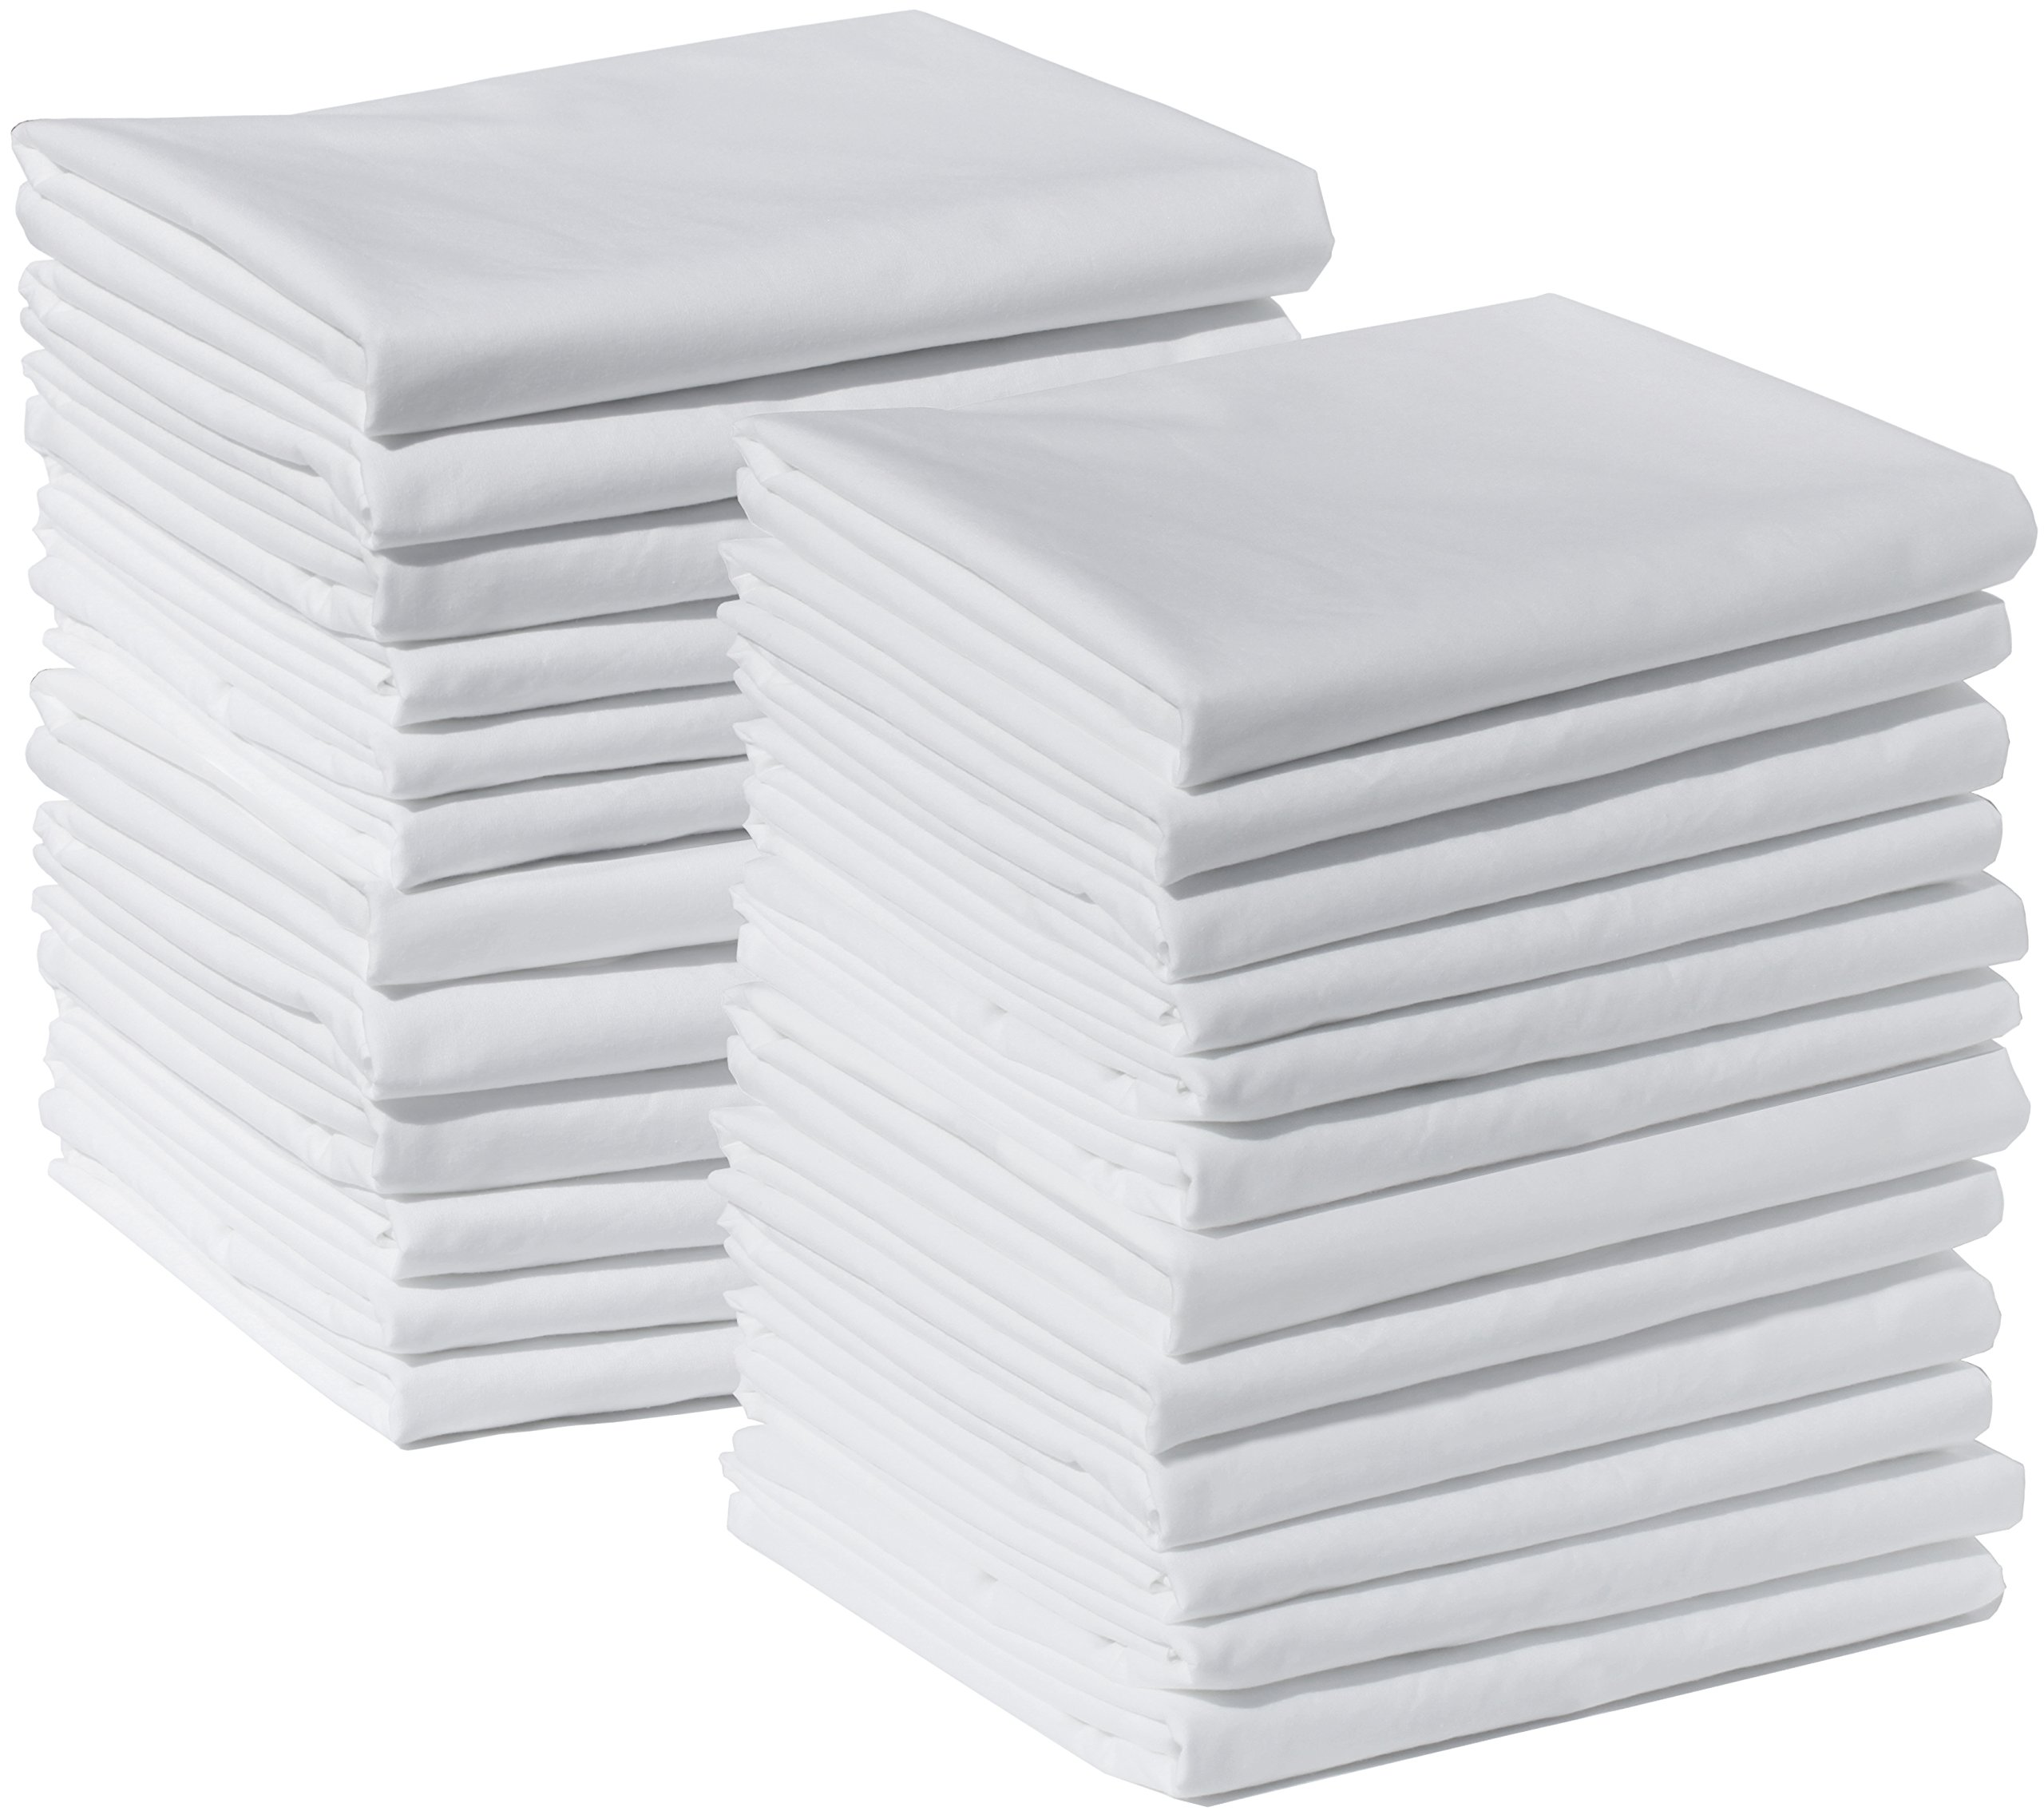 Polycotton Bulk Pack of 24 Standard Size Pillowcases, White 200 Thread Count, 21''x30'' White (Fits 20'' X26'' pillow), 2 Dozen, Perfect for Physical Therapy Clinics, Hotels, Camps by American Pillowcase (Image #1)